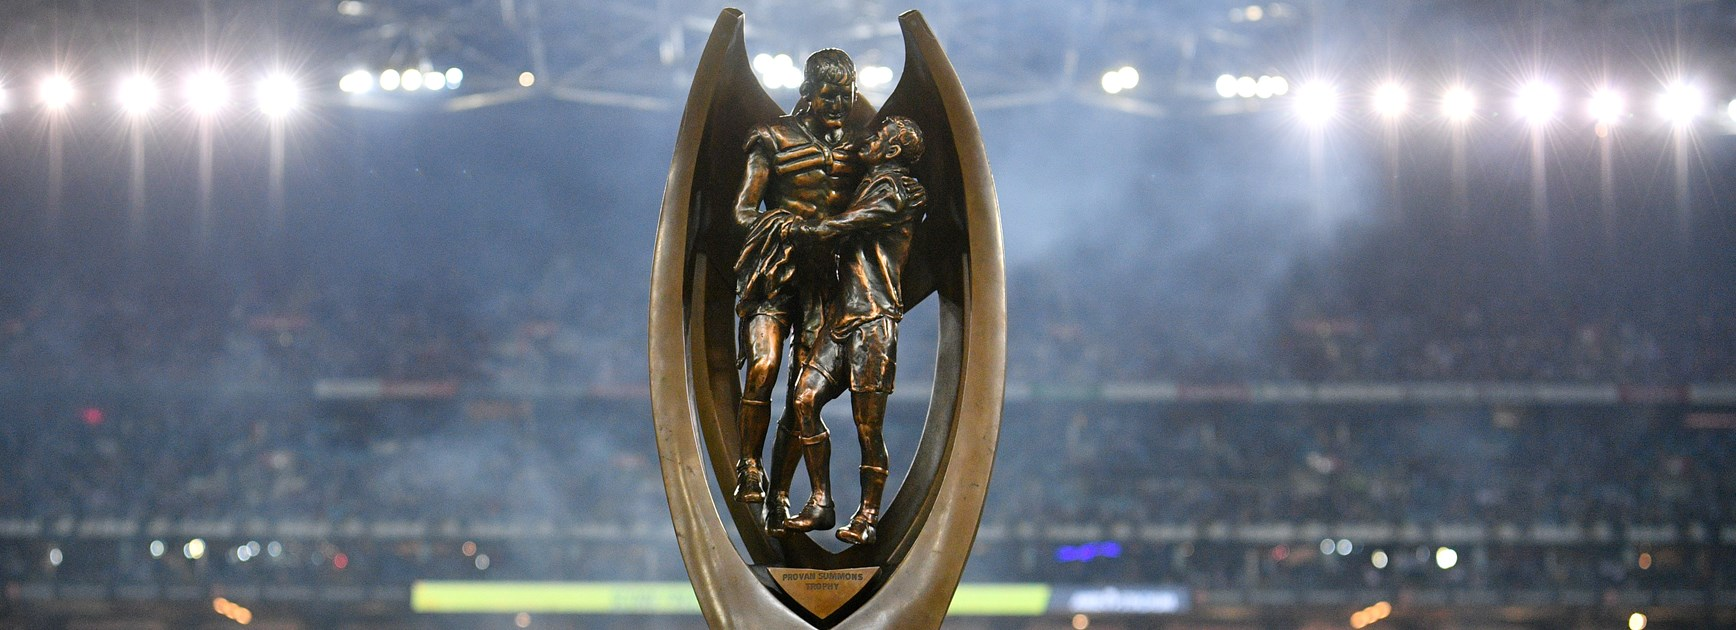 Provan-Summons Trophy